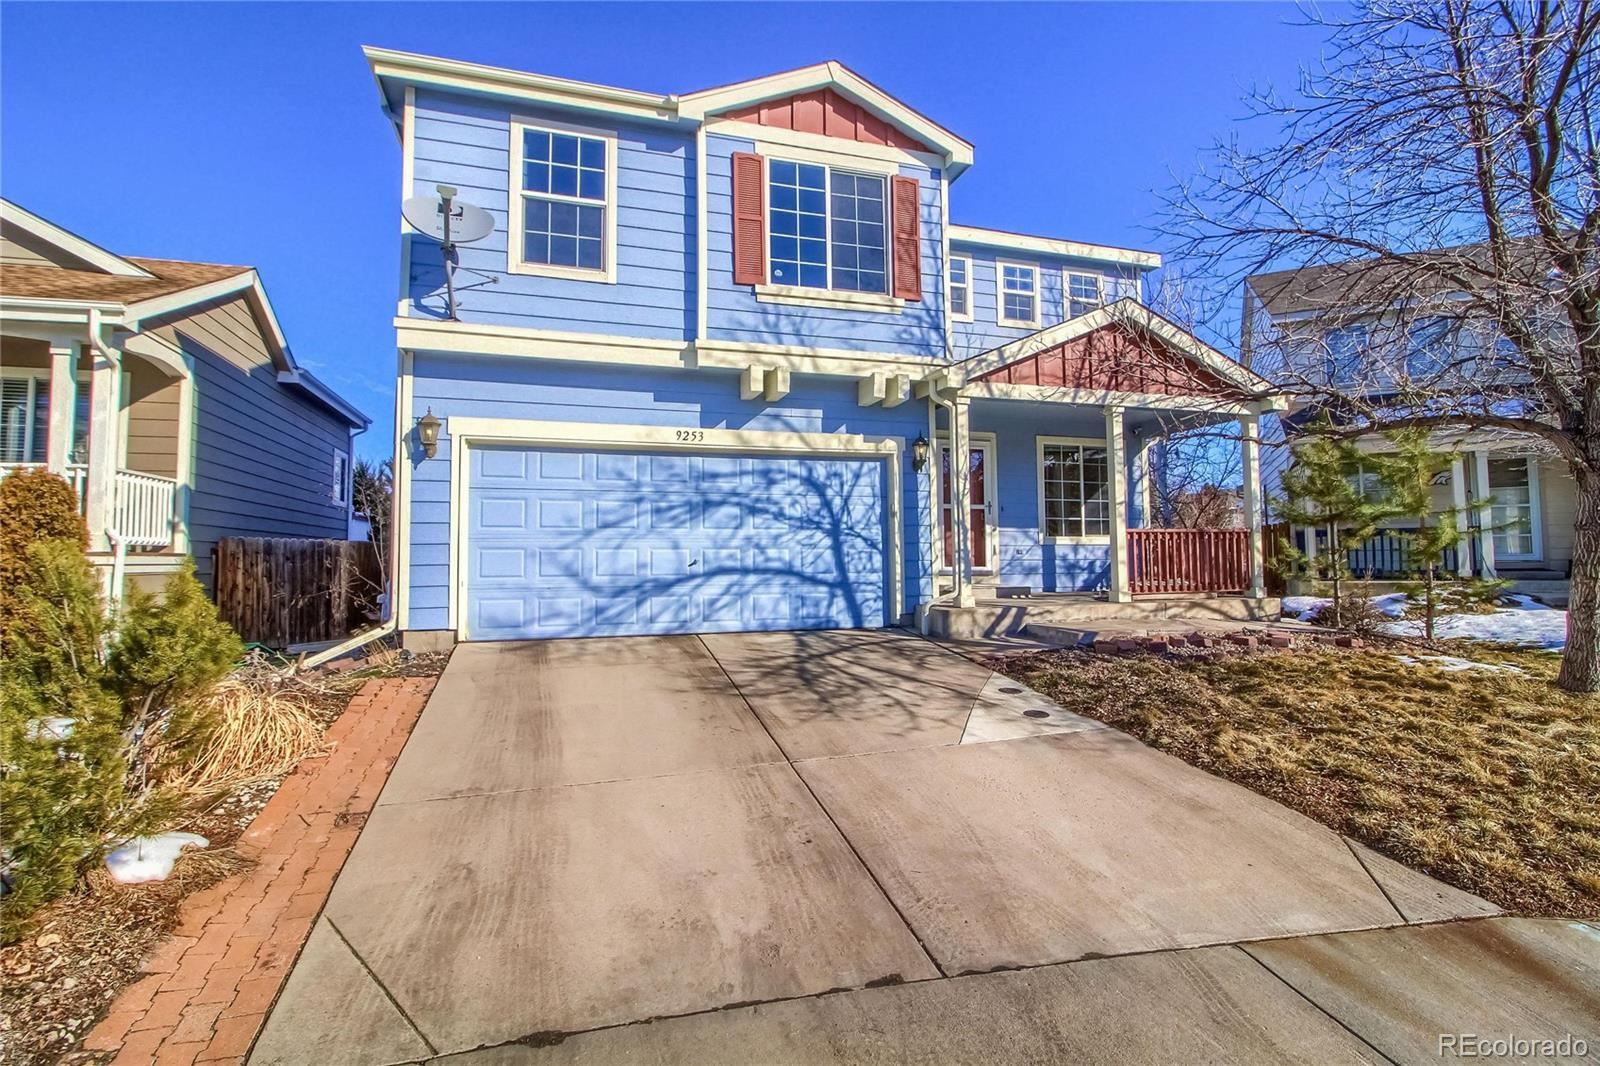 9253 E Missouri Avenue, Denver, CO 80247 - #: 4091765